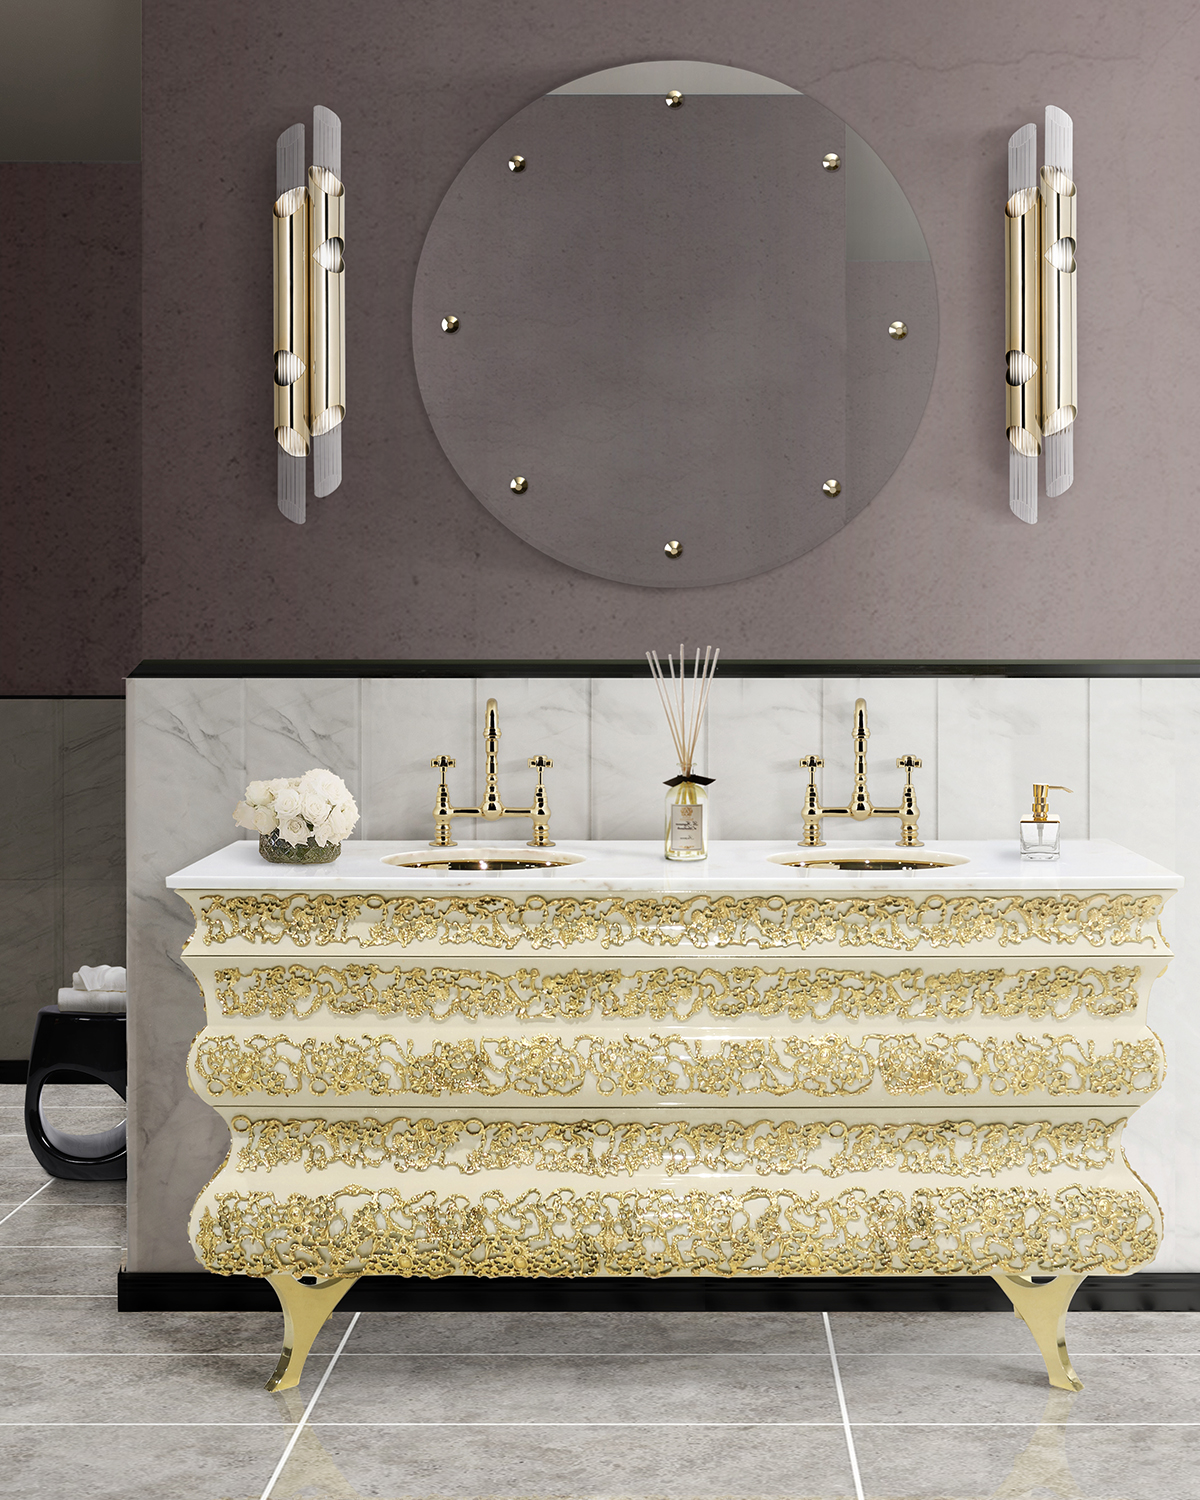 Beautiful Bathroom Paint Colors for Your Next Renovation  Beautiful Bathroom Paint Colors for Your Next Renovation 80 1